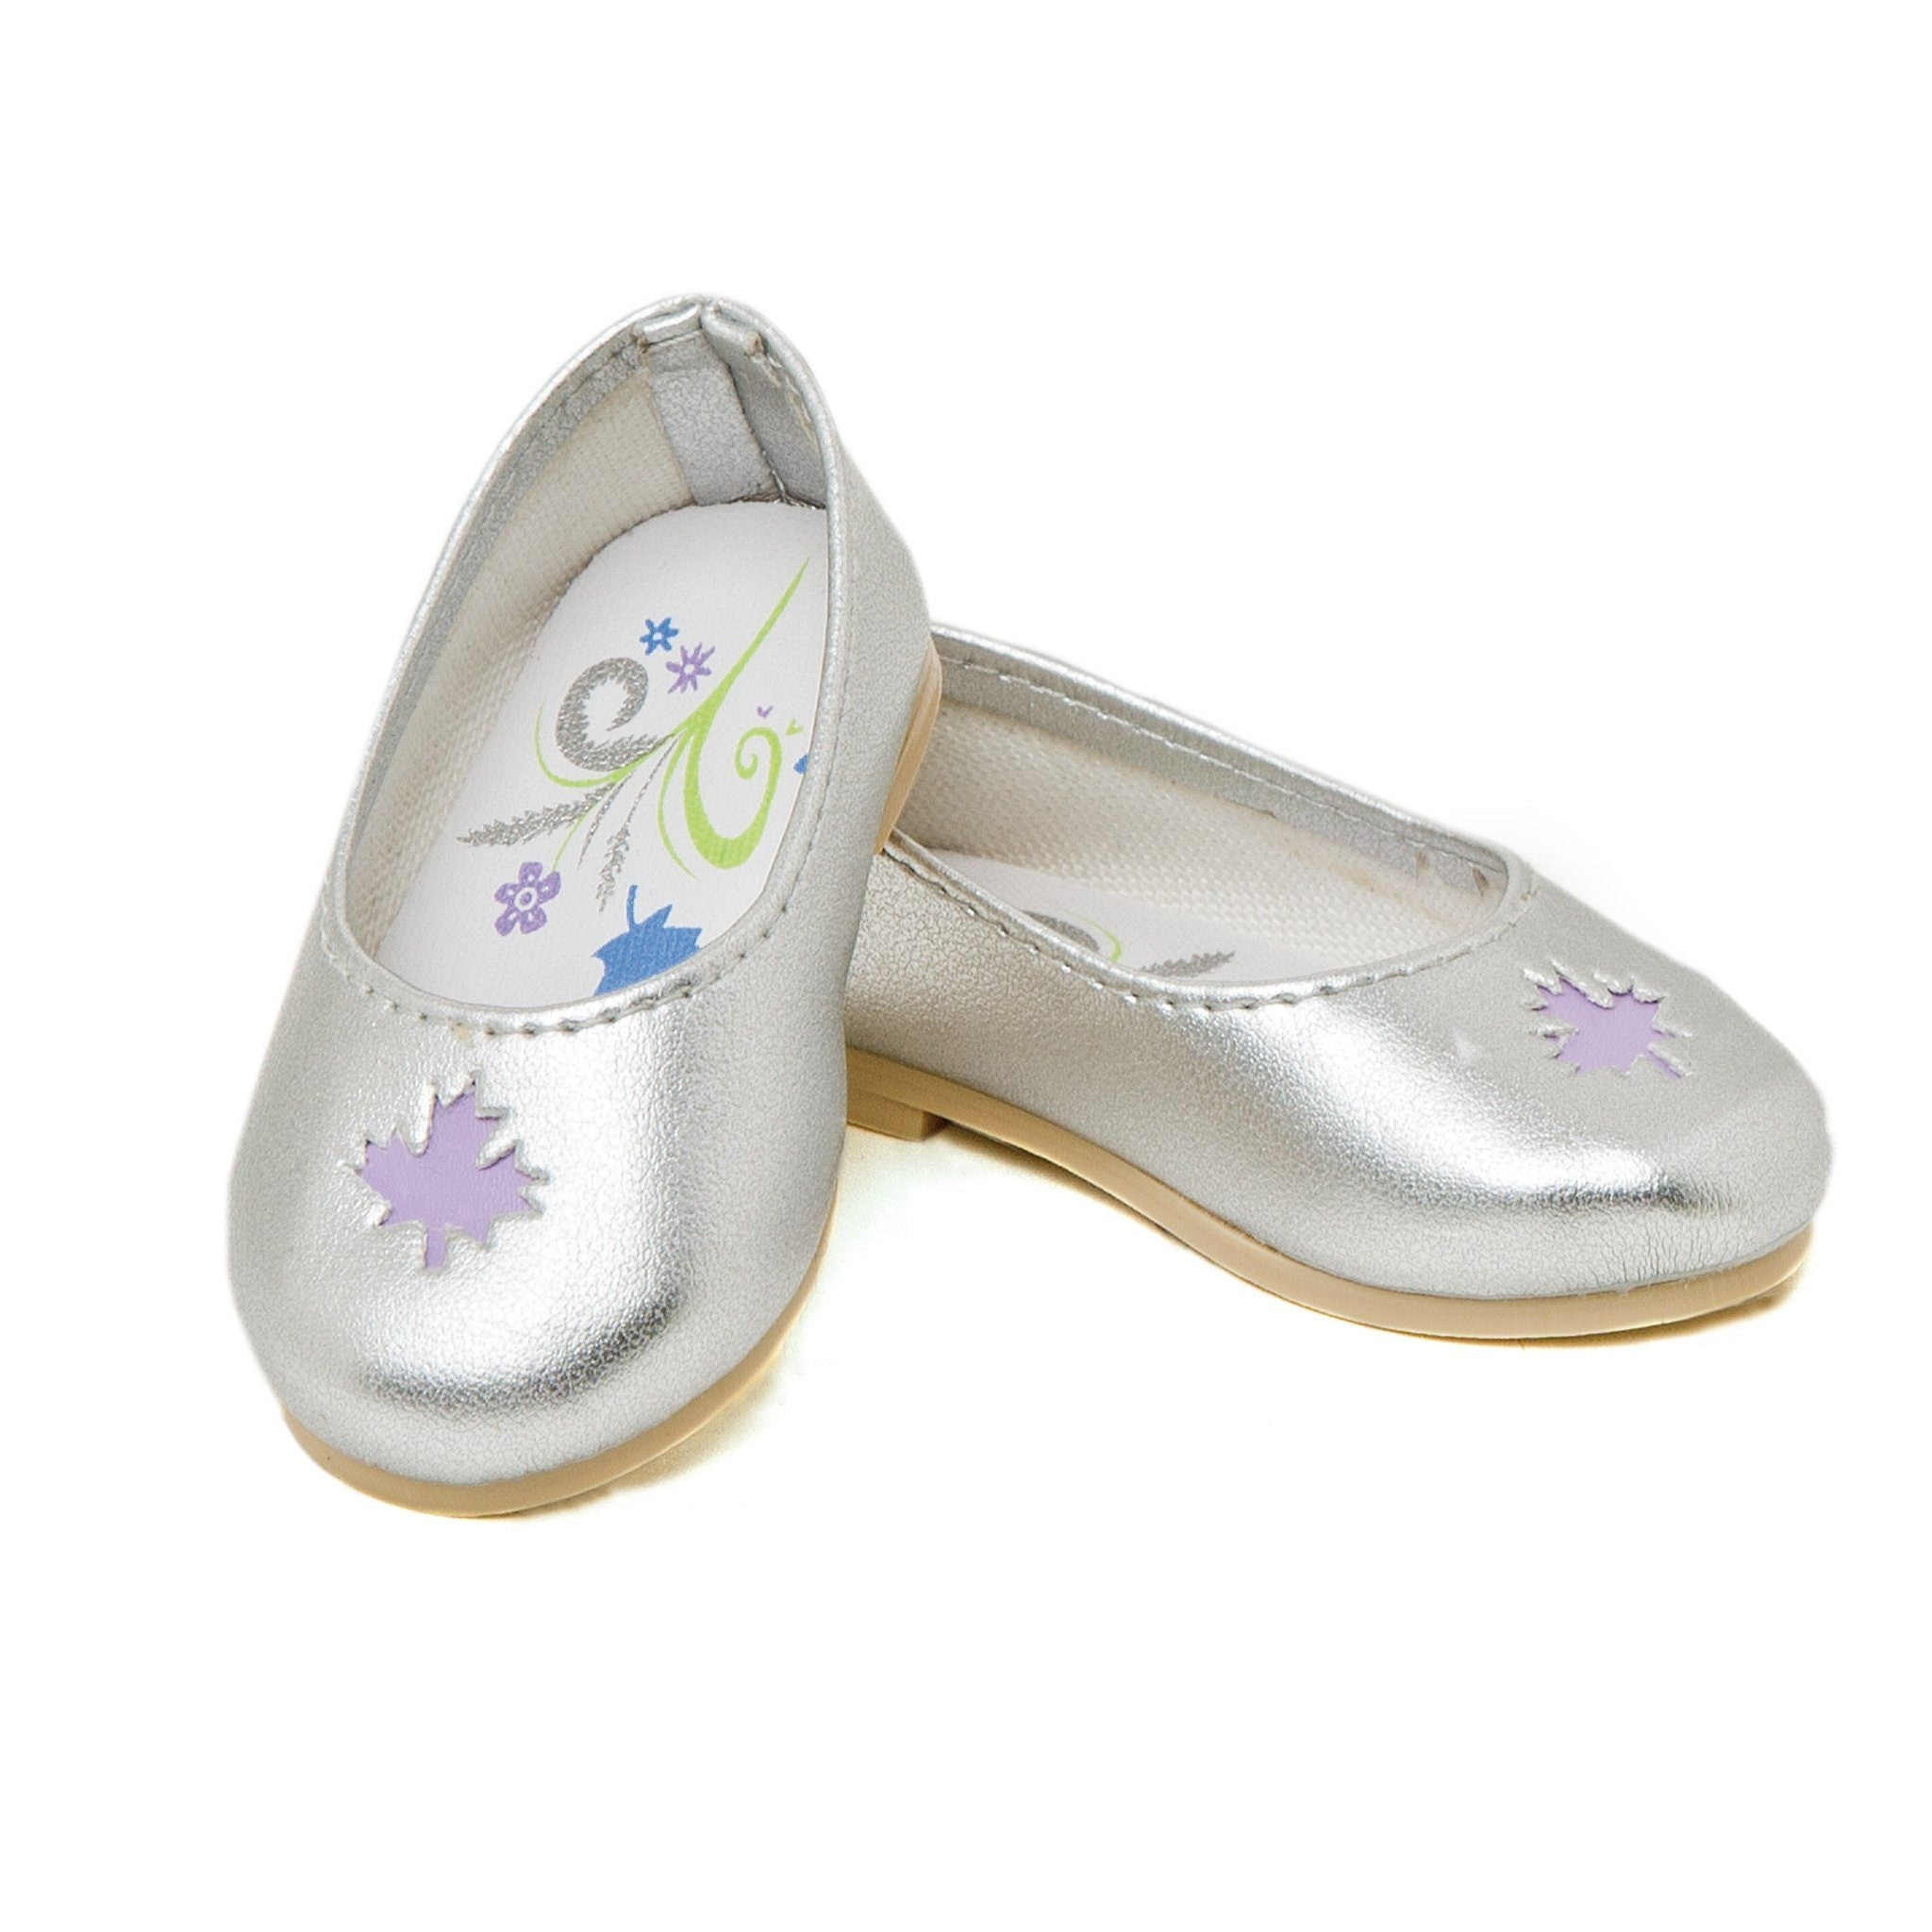 Maplelea Friend 18 inch doll starter outfit silver ballet flats with maple leaf cutout fits all 18 inch dolls.